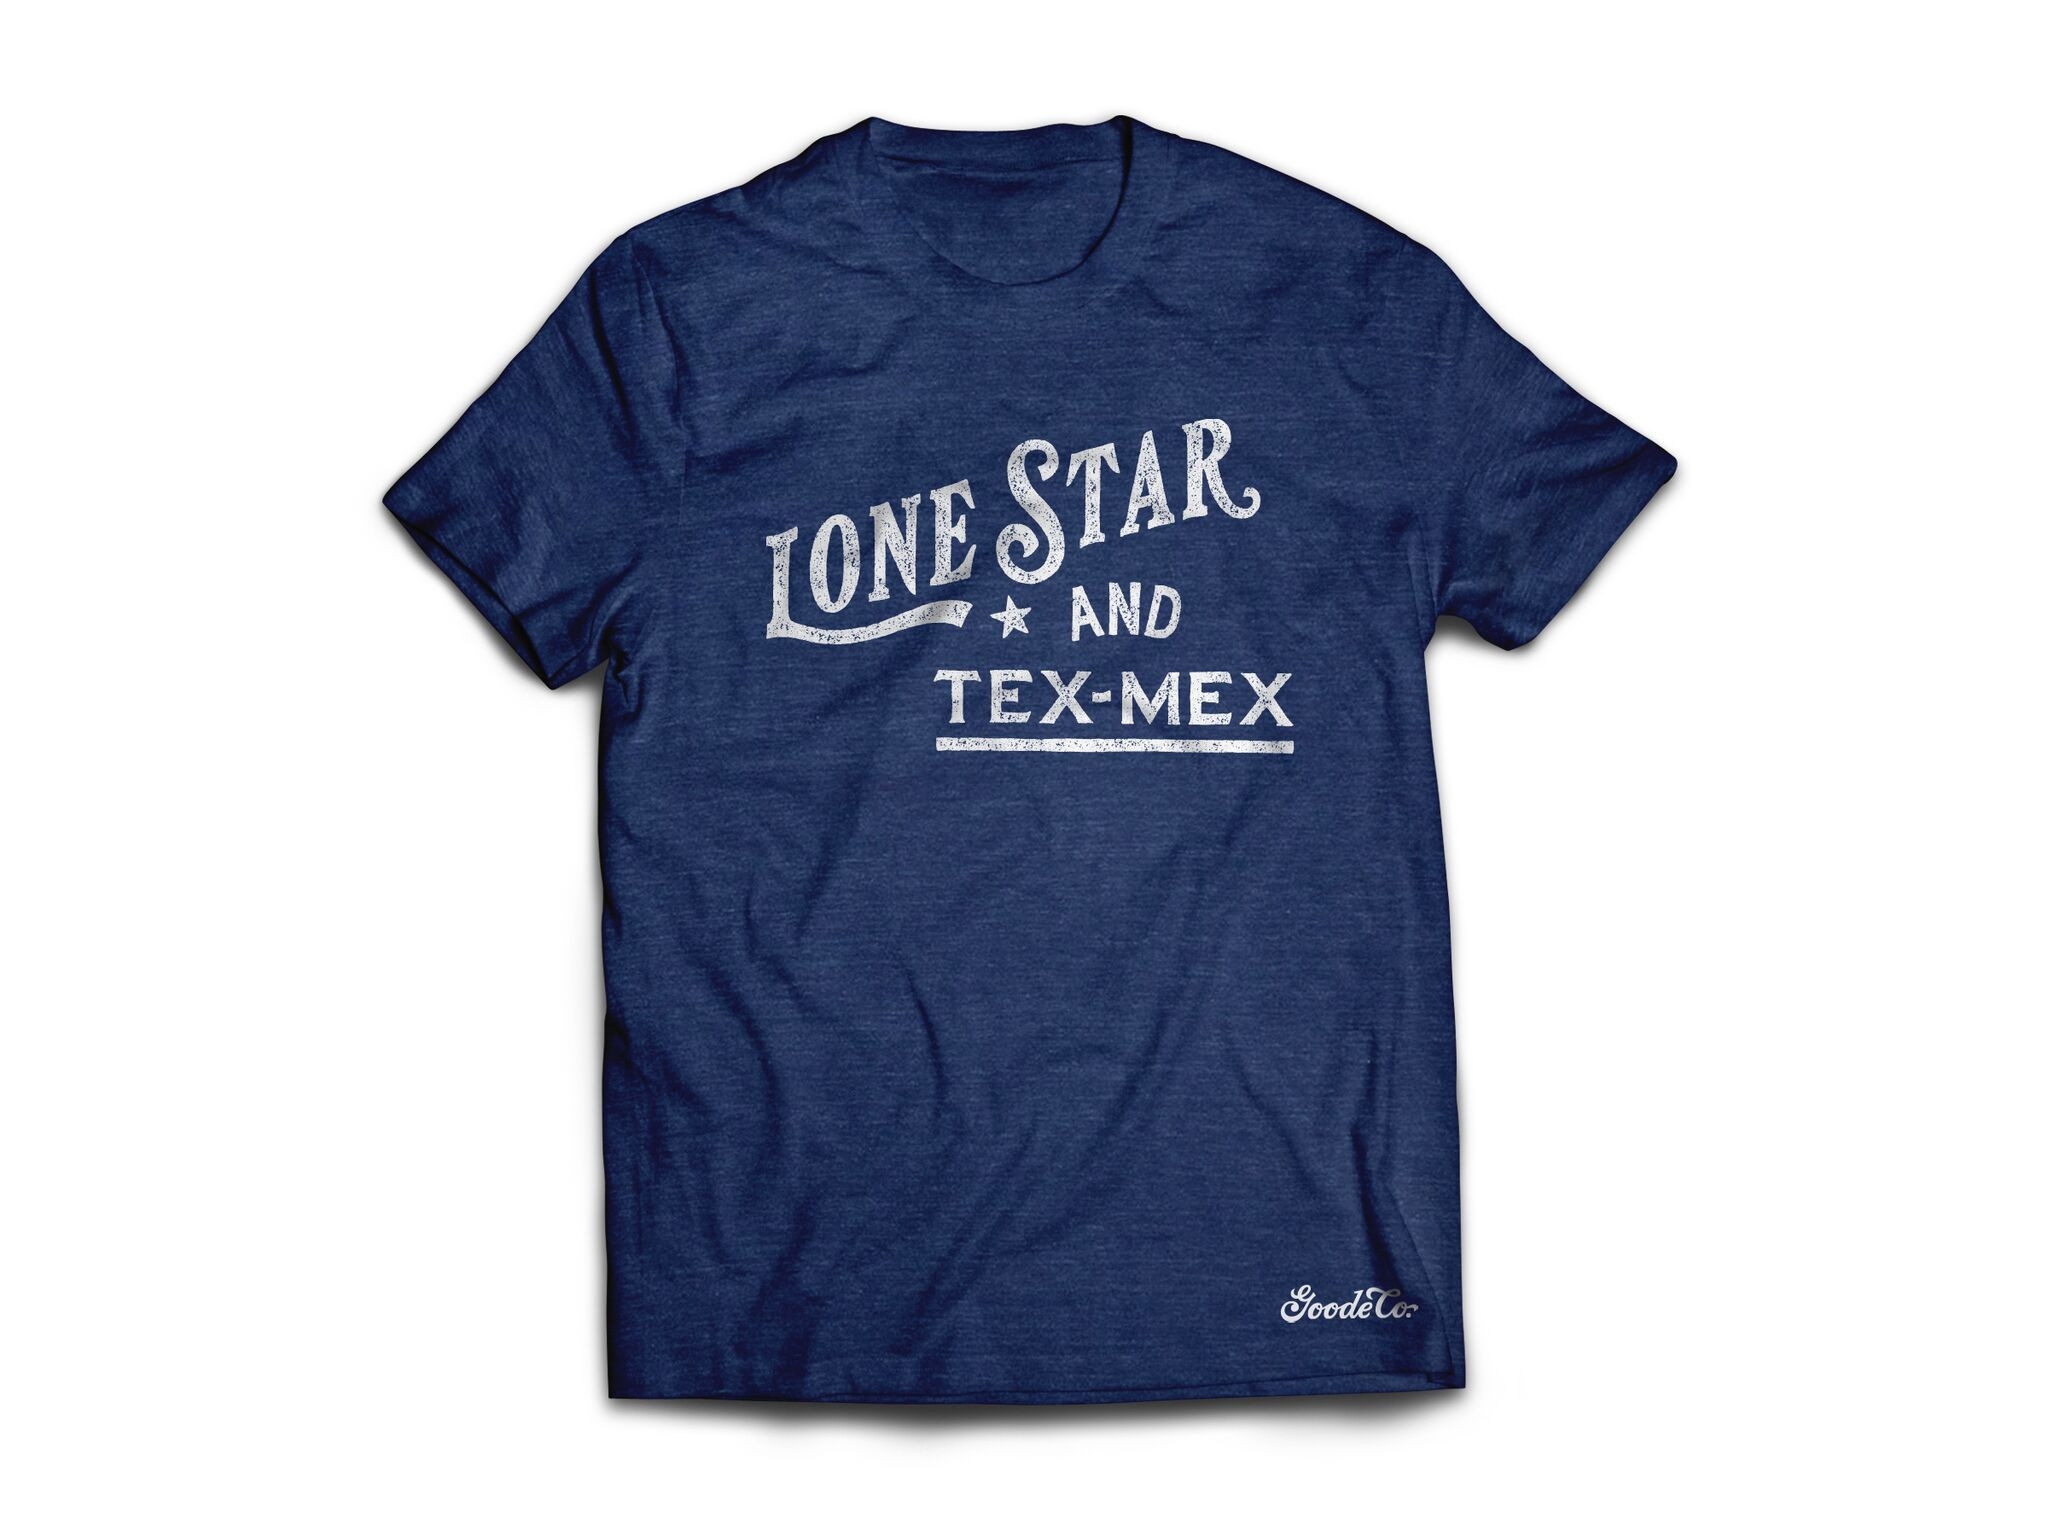 "Product photo for Goode Co's ""Lone Star & Tex-Mex"" t-shirt."